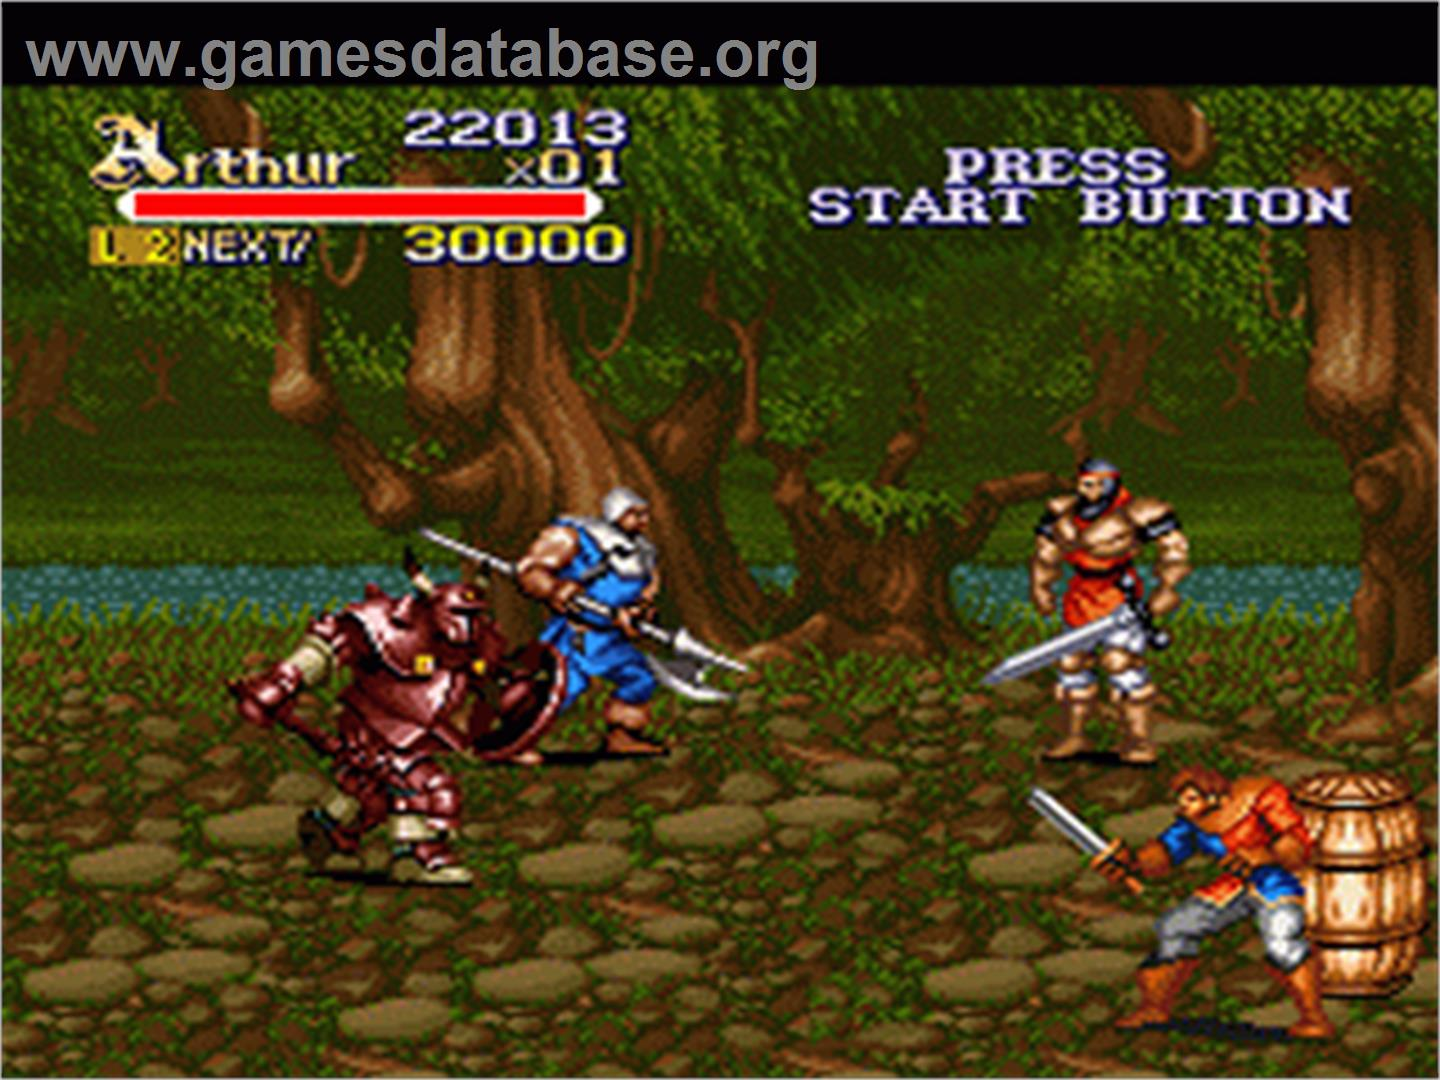 Knights Of The Round Nintendo Snes Games Database